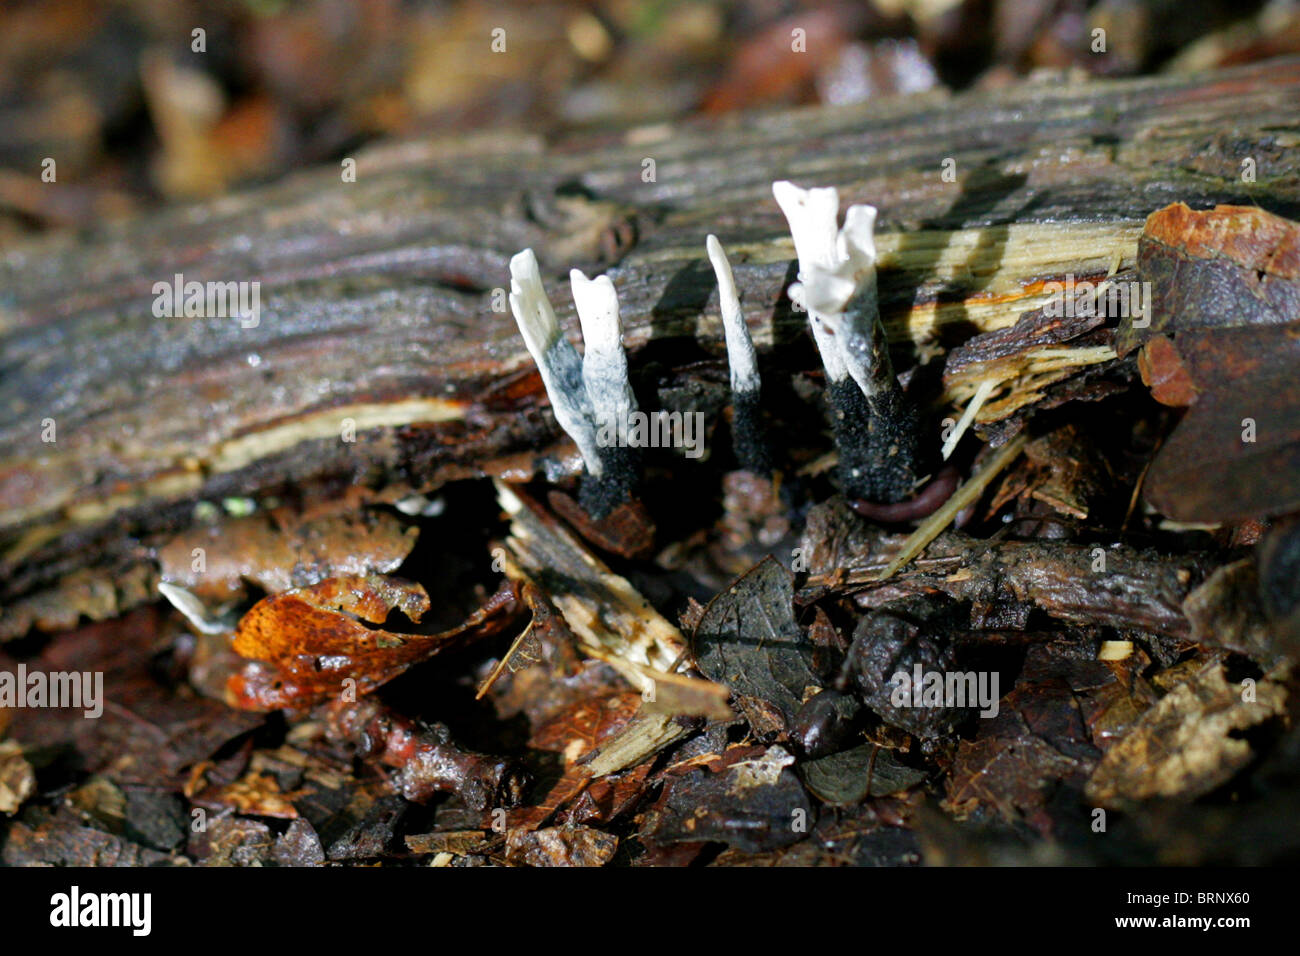 Candle Snuff Fungus or Stag's Horn, Xylaria hypoxylon, Xylariaceae - Stock Image